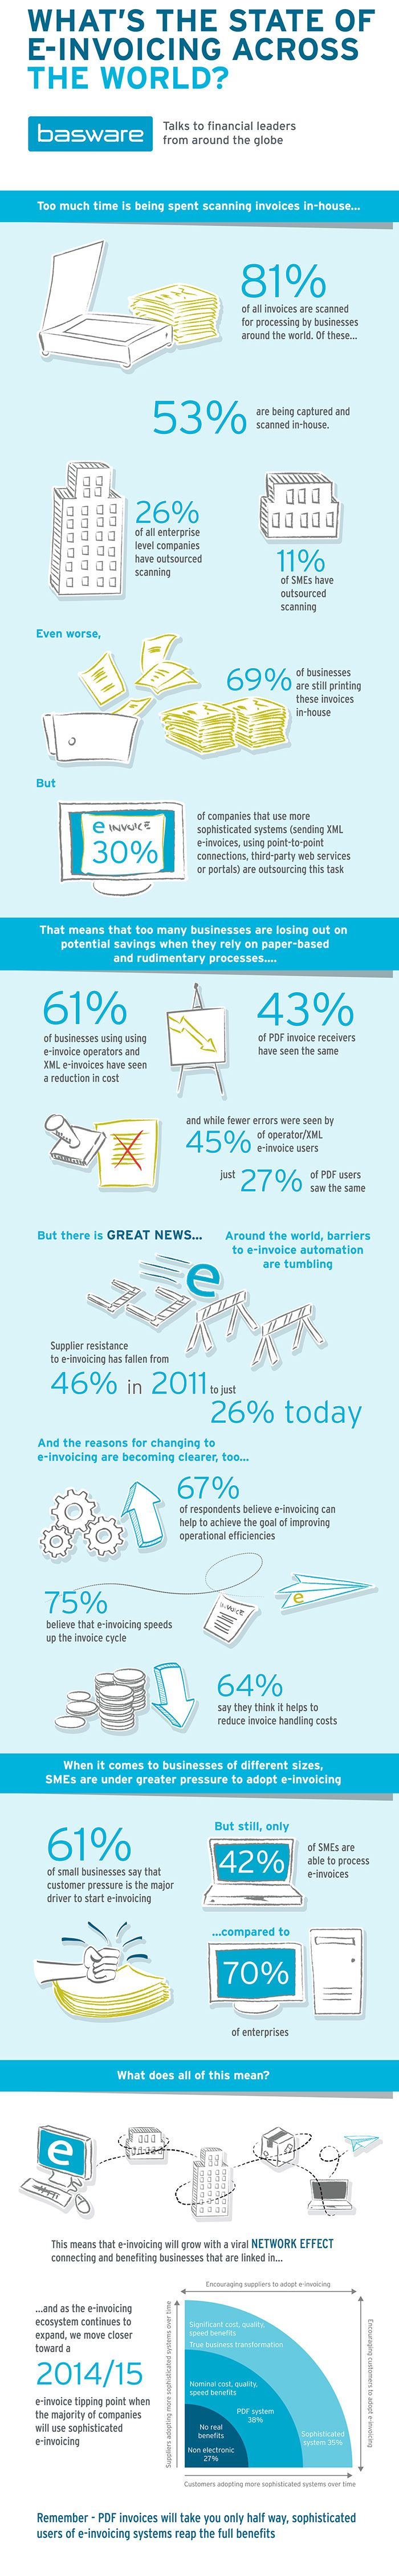 What's the state of e-invoicing across the world? Infographic on the findings of the 2012 Global e-Invoicing Study by Basware and the Institute of Financial Operations (IFO). http://www.basware.com/einvoicing-survey-2012